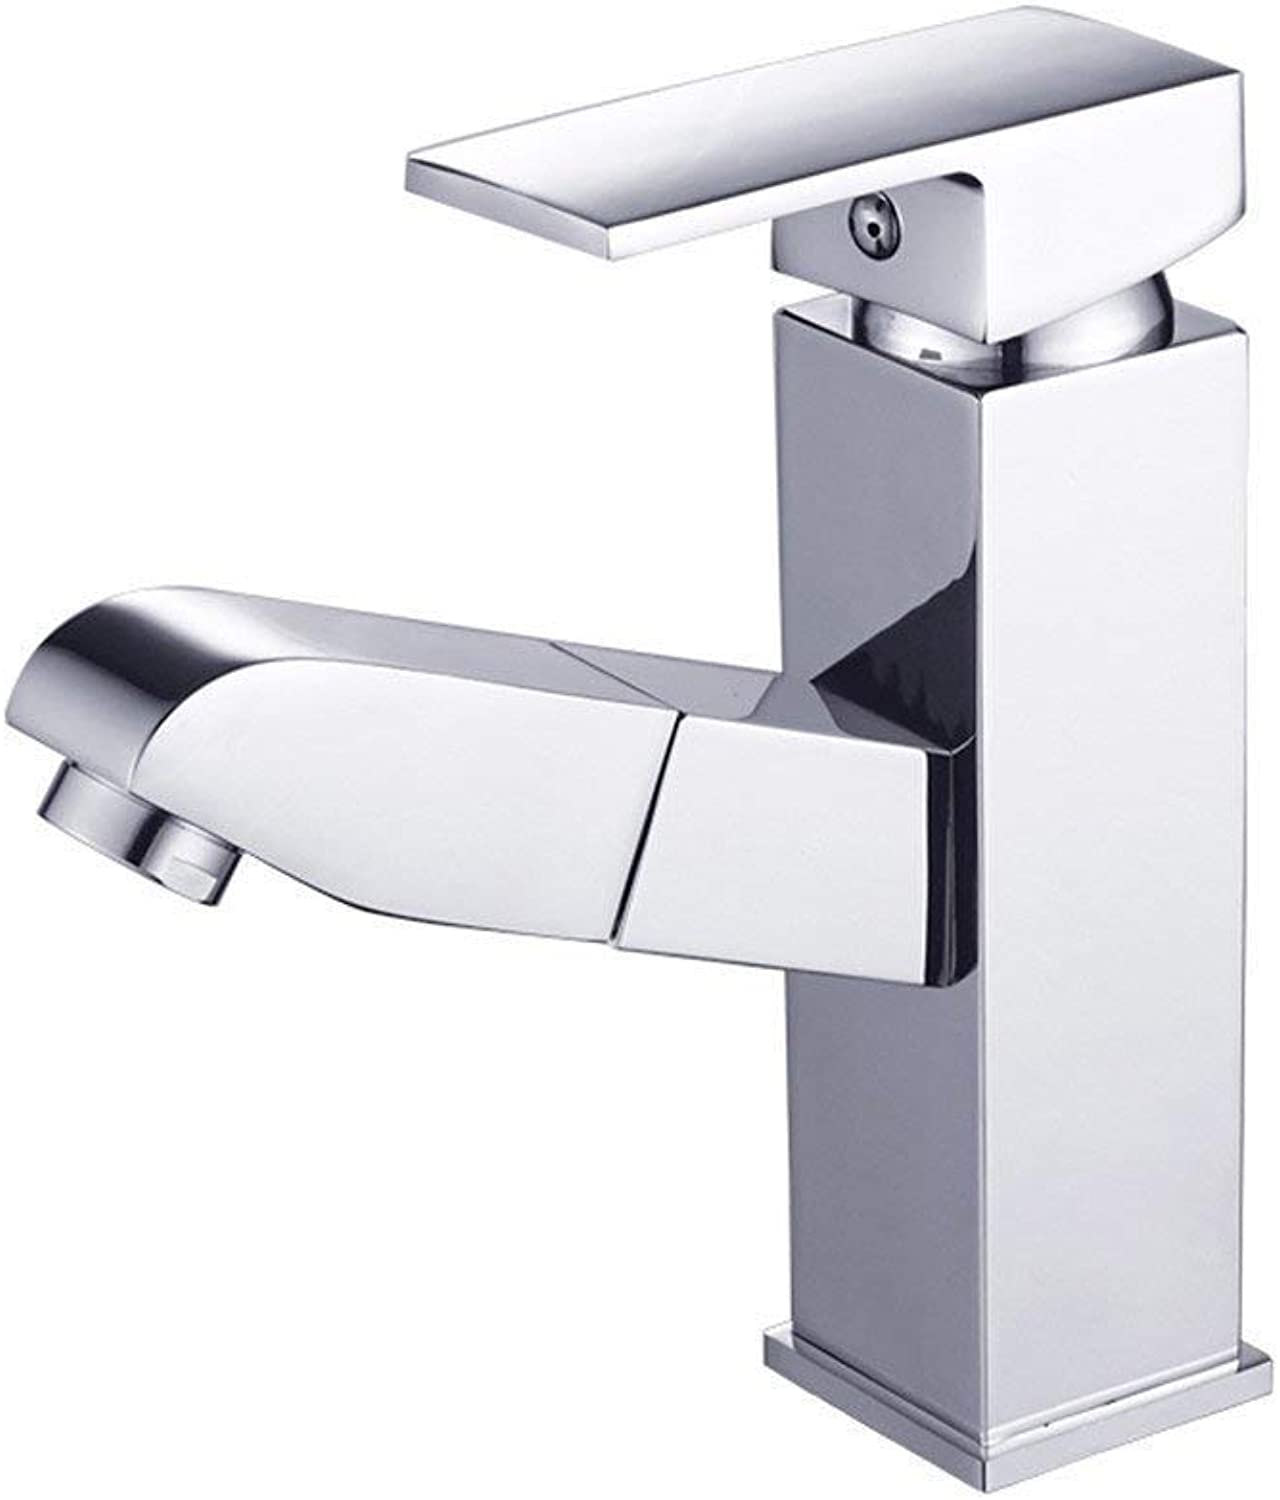 Oudan Pull Faucet Hot and Cold All Copper Washbasin Pull Faucet Single Hole Washbasin Telescopic Faucet Ceramic Valve Core Plating (color   -, Size   -)